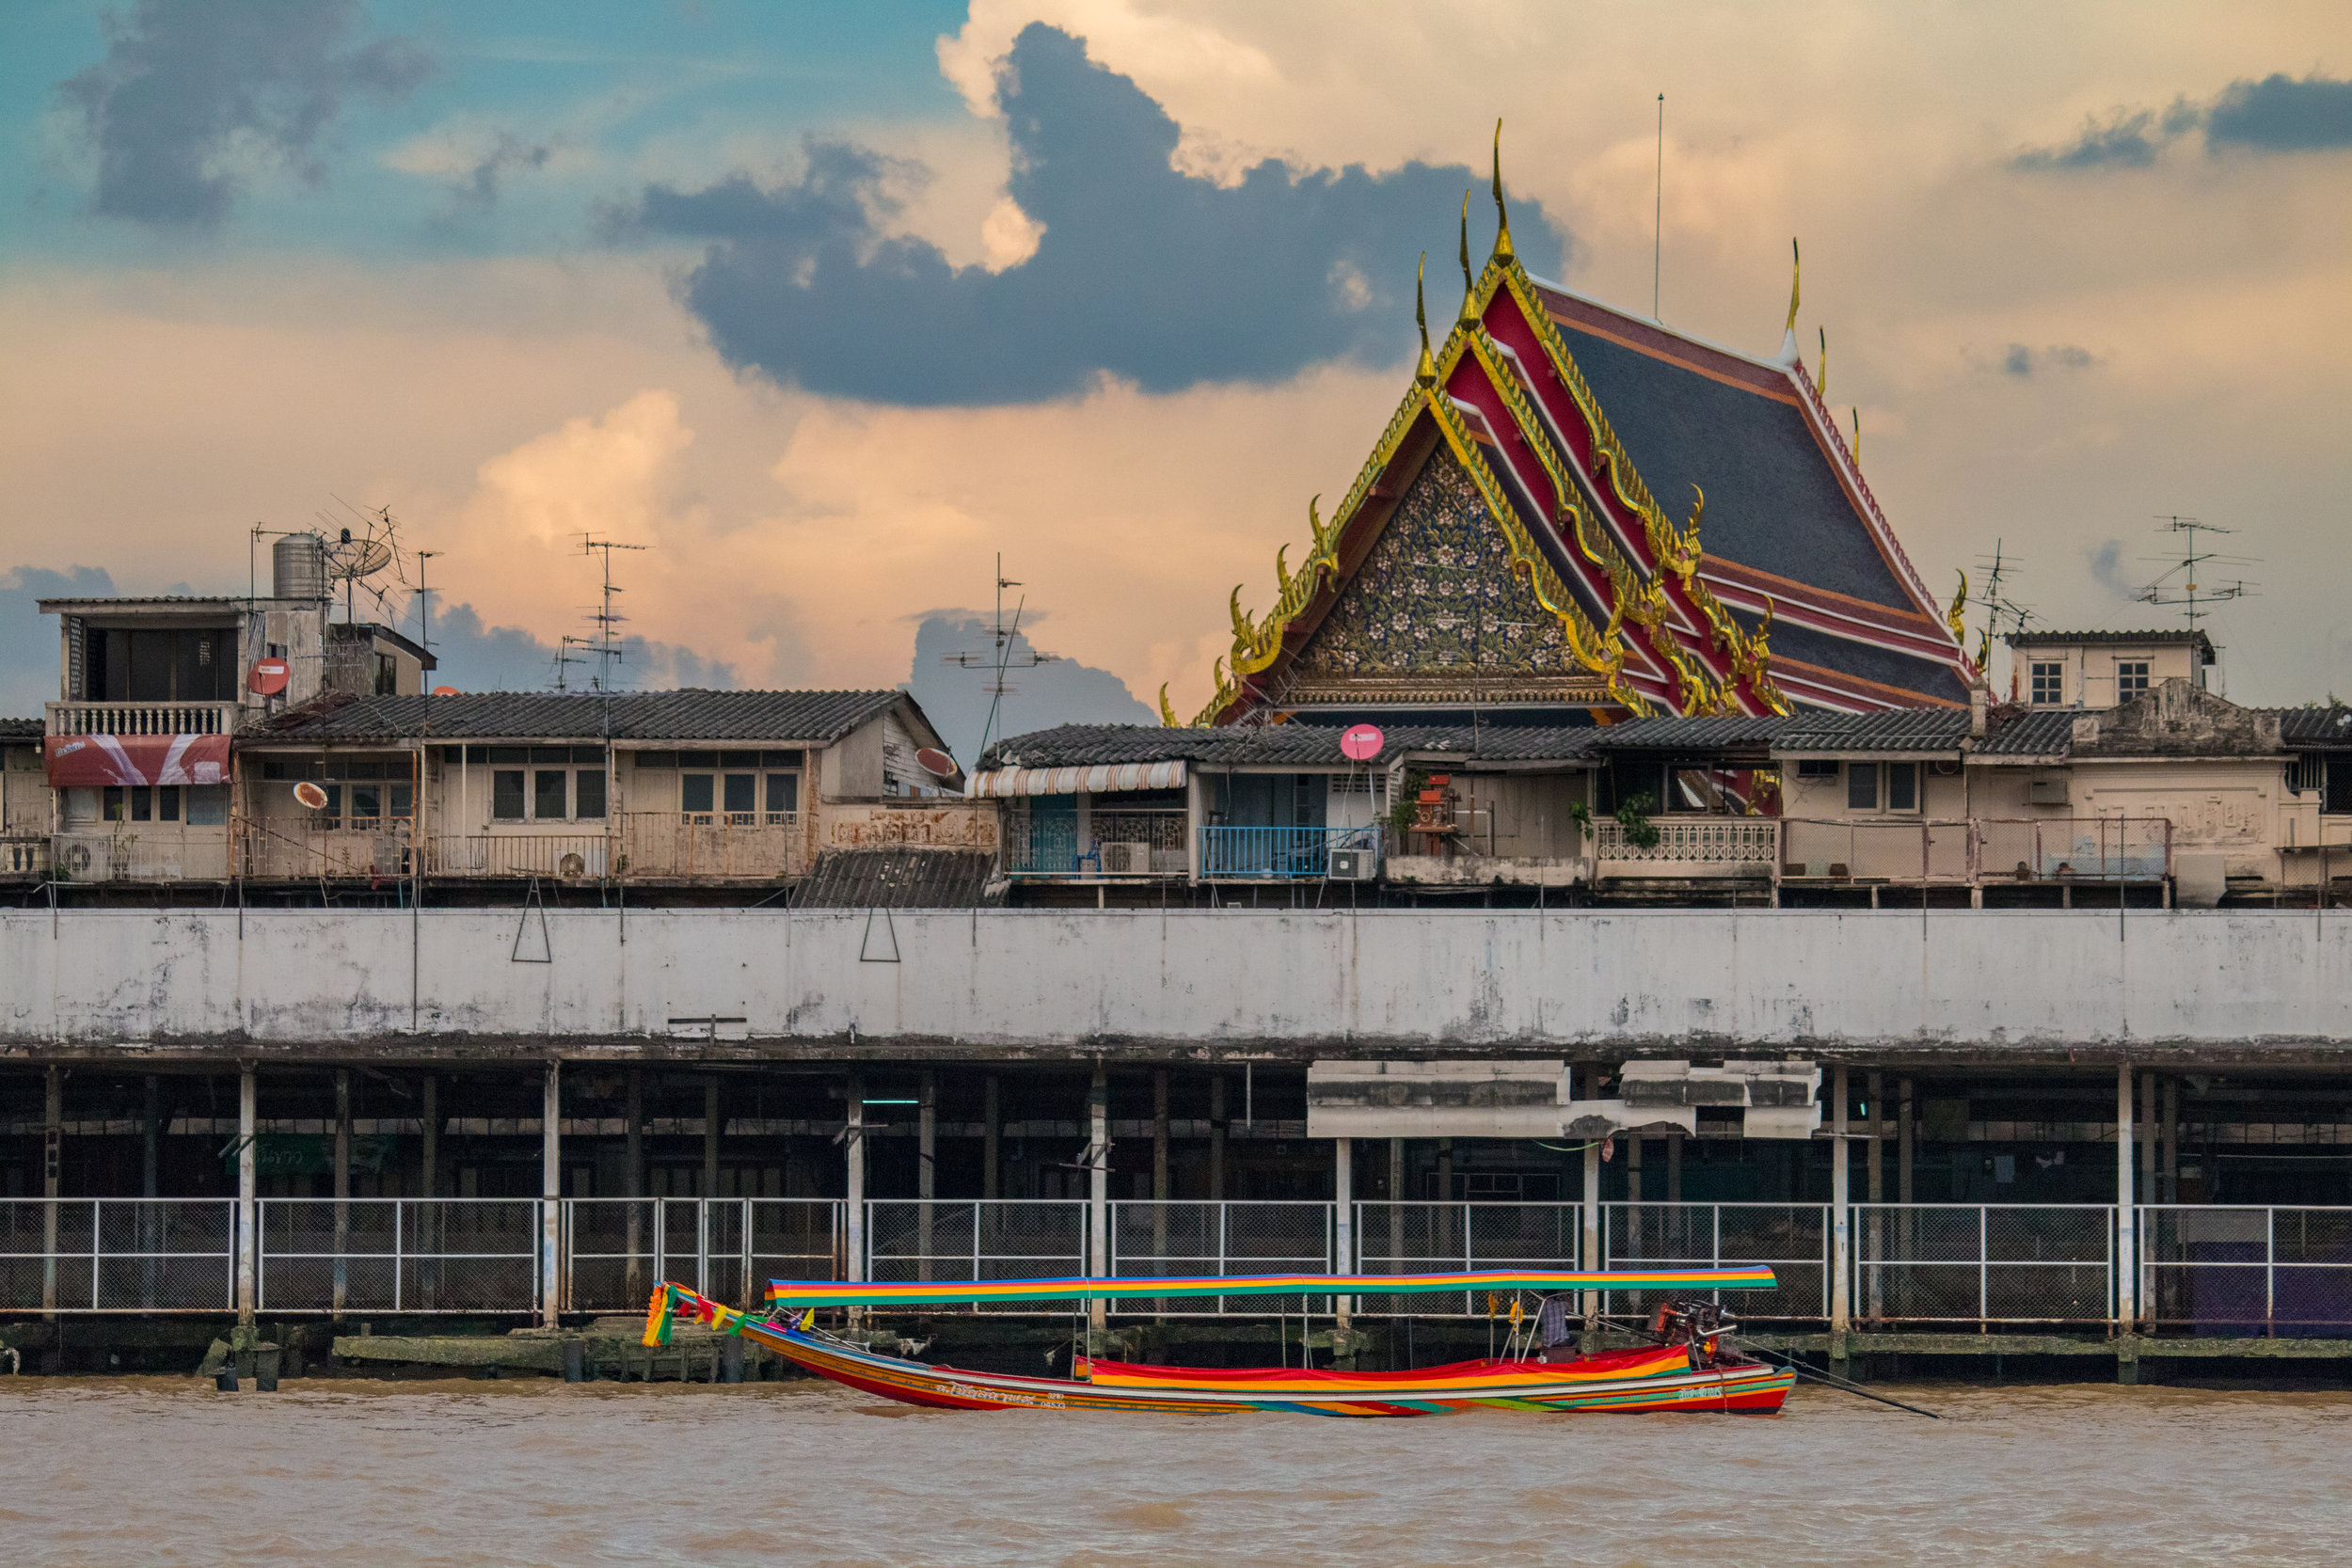 River boat on Chao Phraya River with Wat Pho in the background, Bangkok, Thailand.